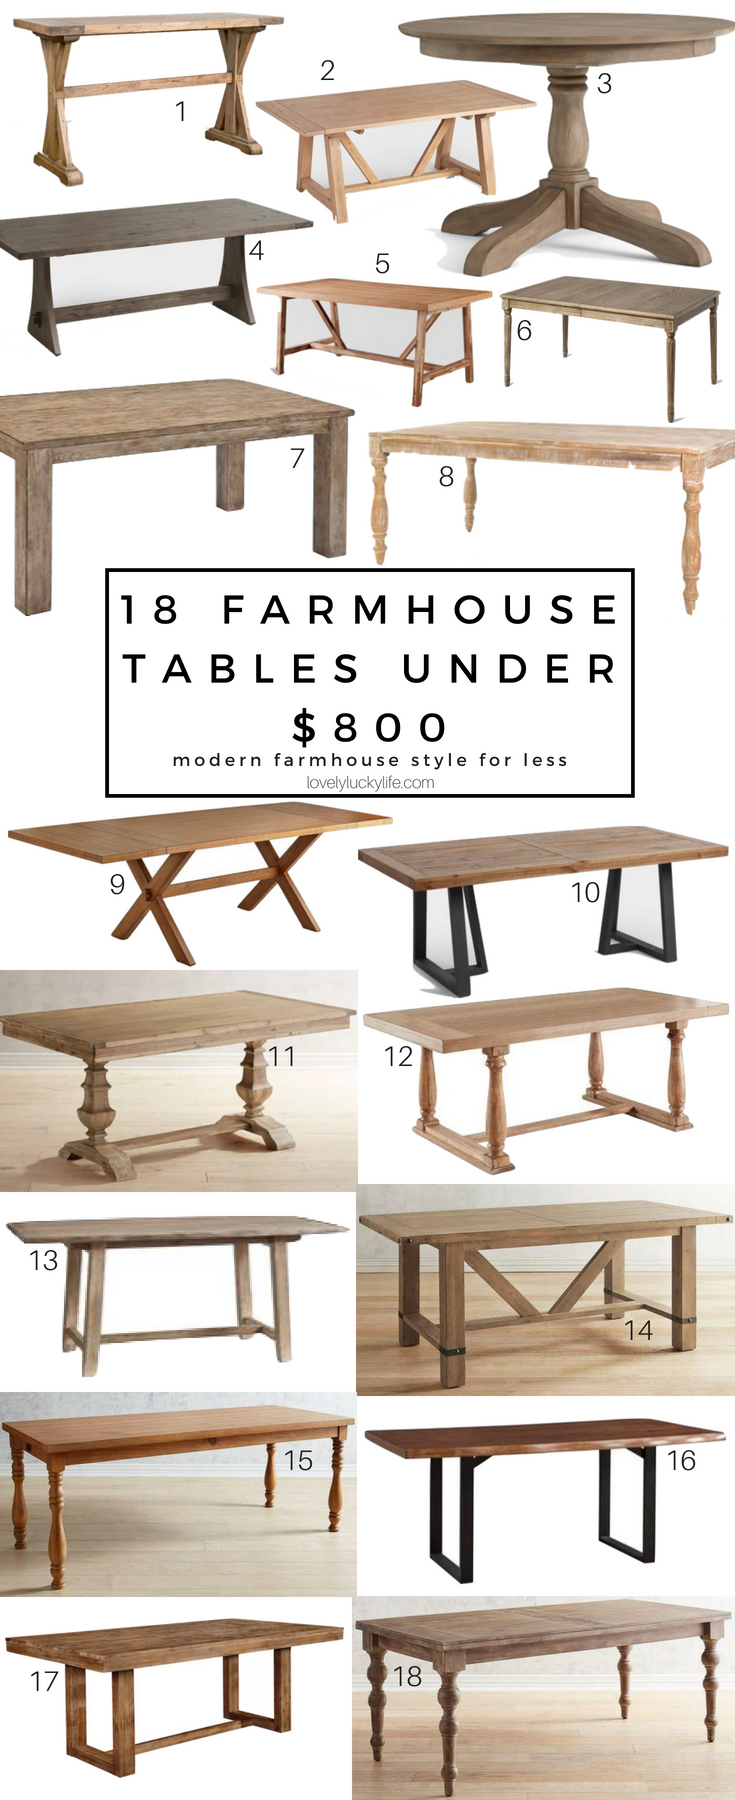 18 of the best farmhouse tables + they're all under $800! #farmhouse #modernfarmhouse